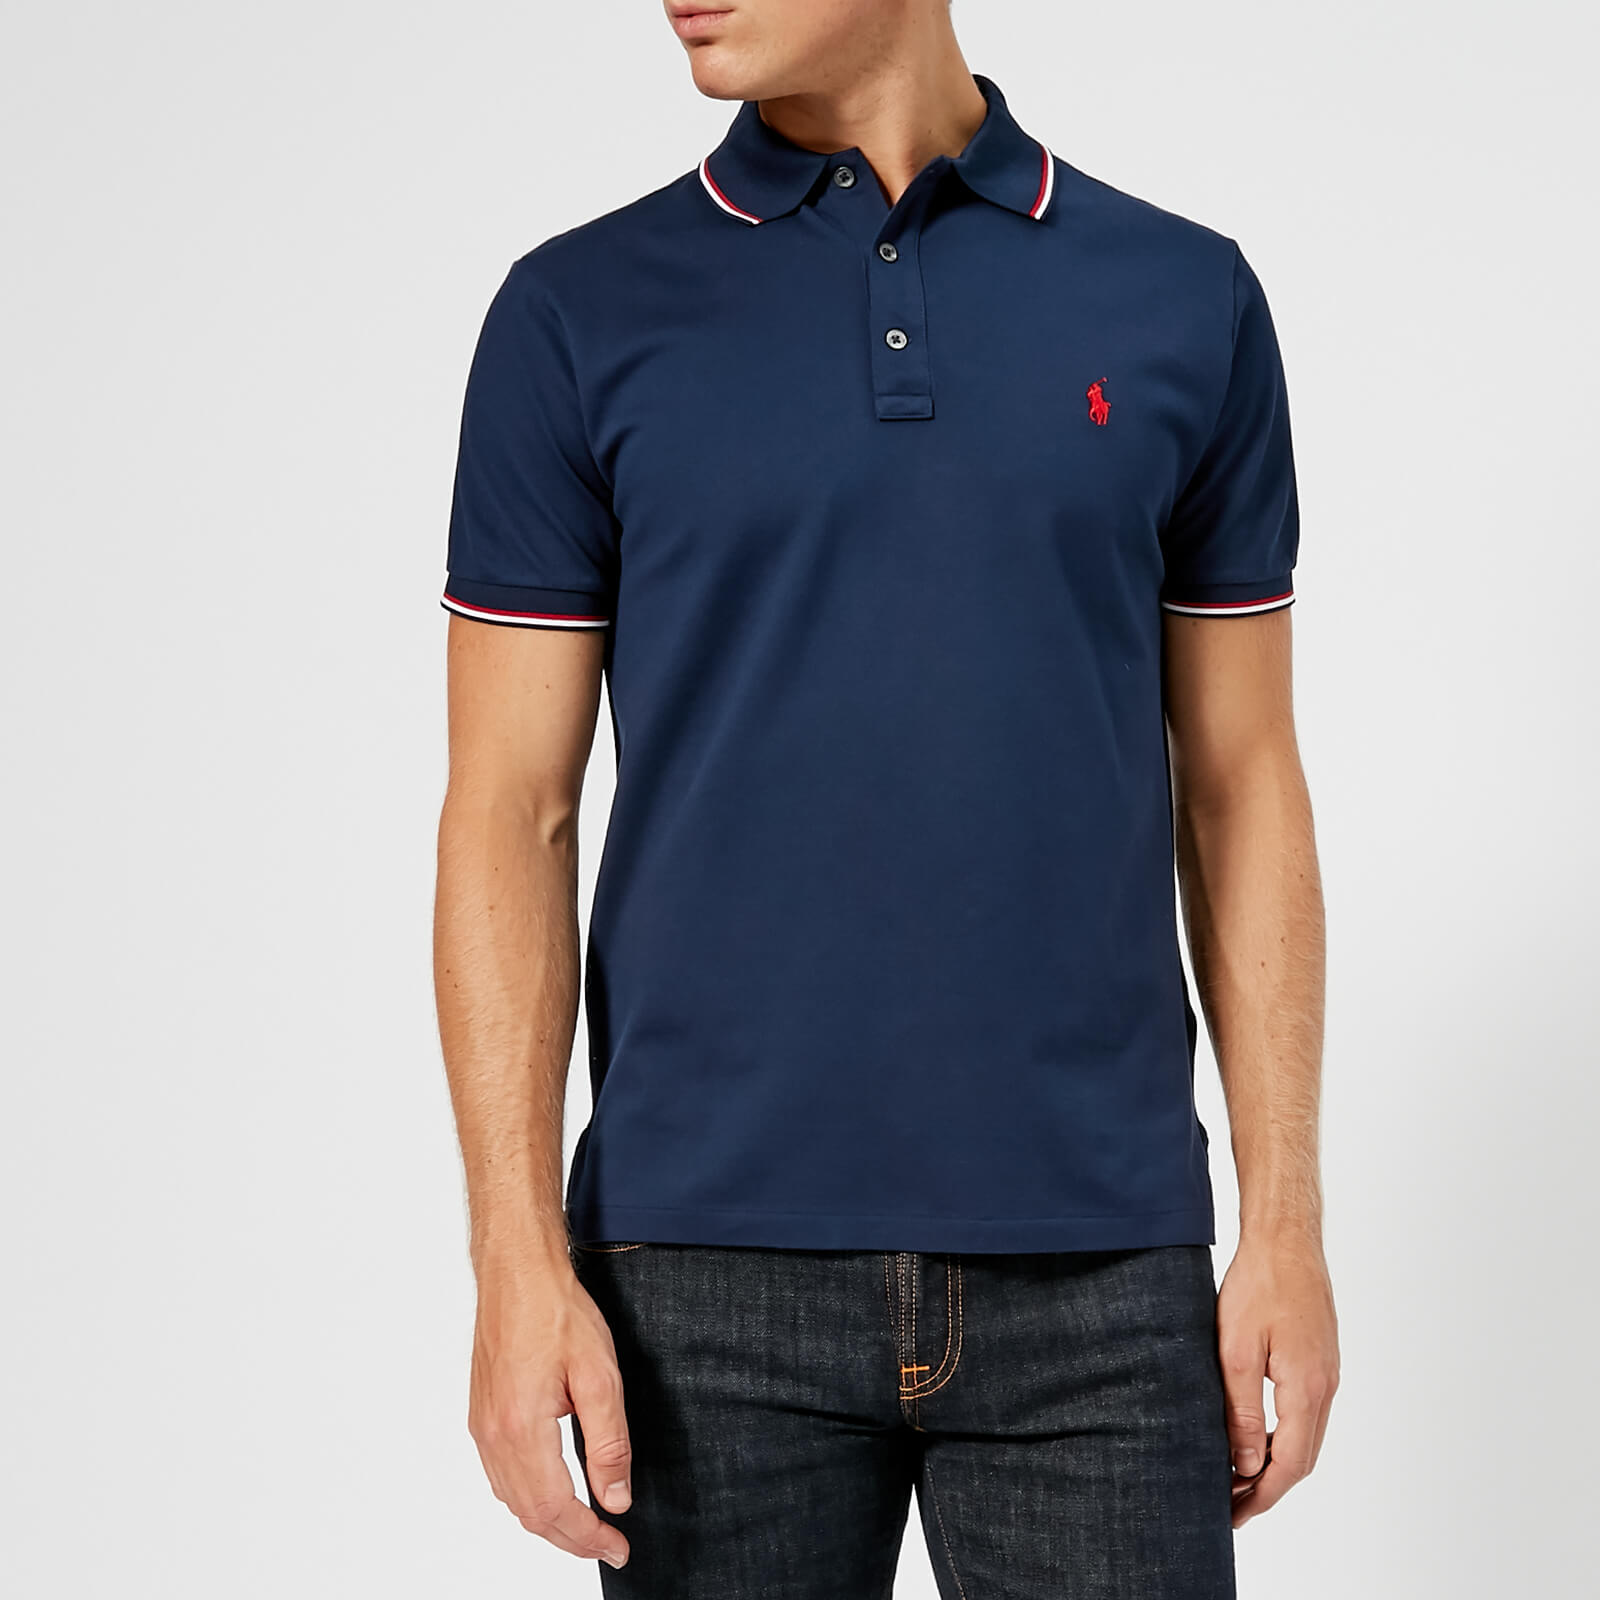 bf61cd72 Polo Ralph Lauren Men's Custom Slim Fit Mesh Polo Shirt - Cruise Navy -  Free UK Delivery over £50